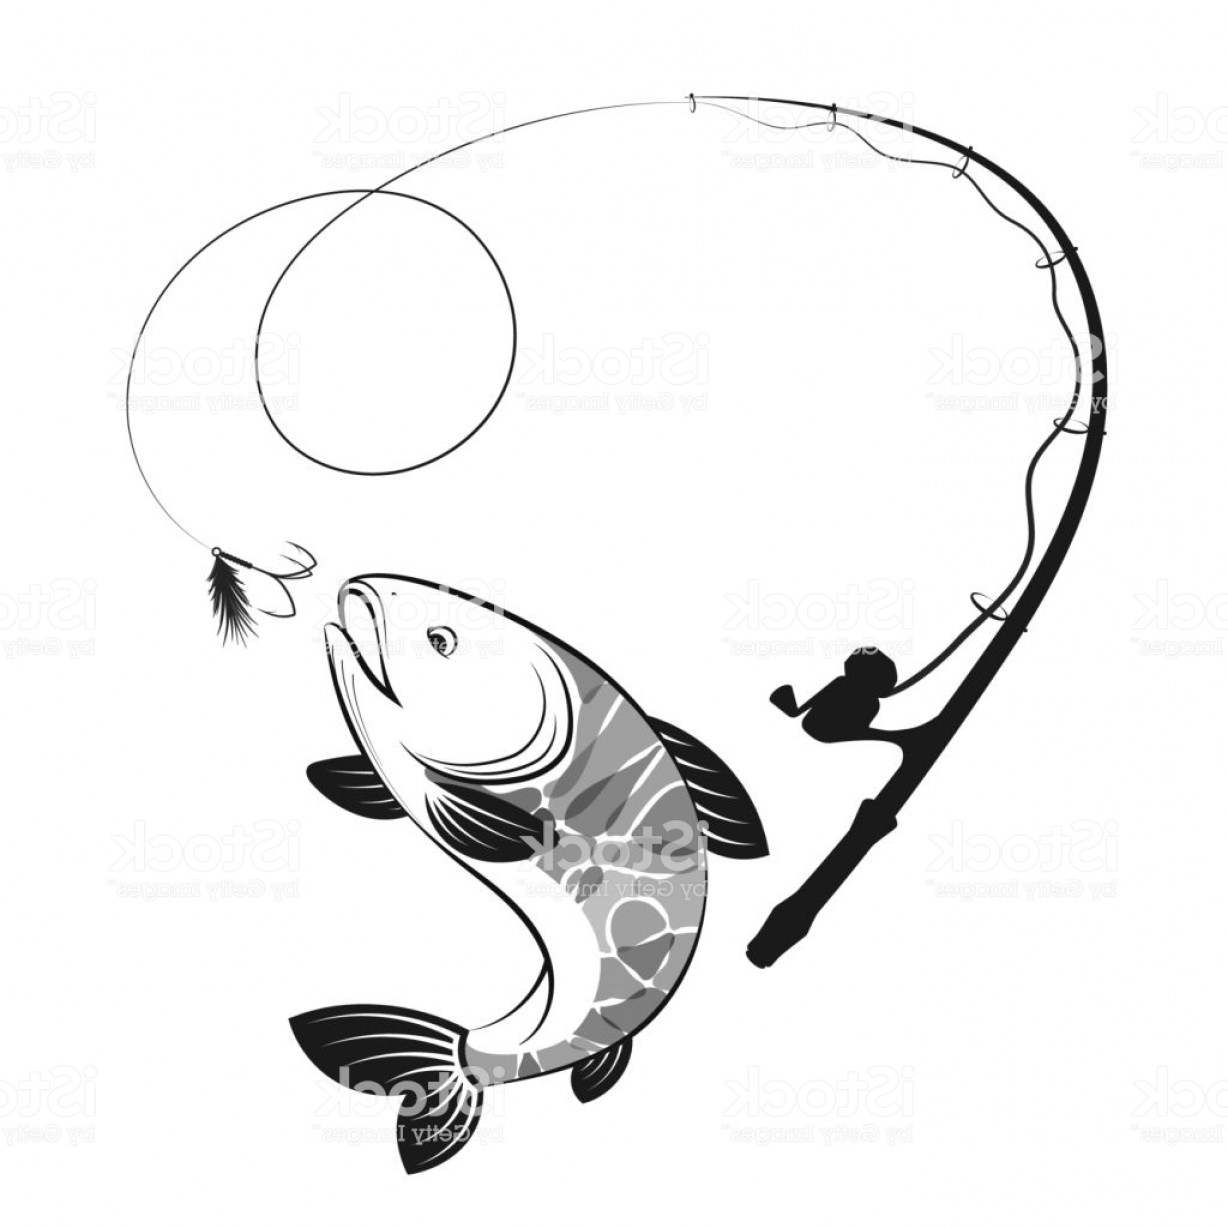 Fishing Pole Silhouette Vector: Fish And Fishing Rod Silhouettes Gm